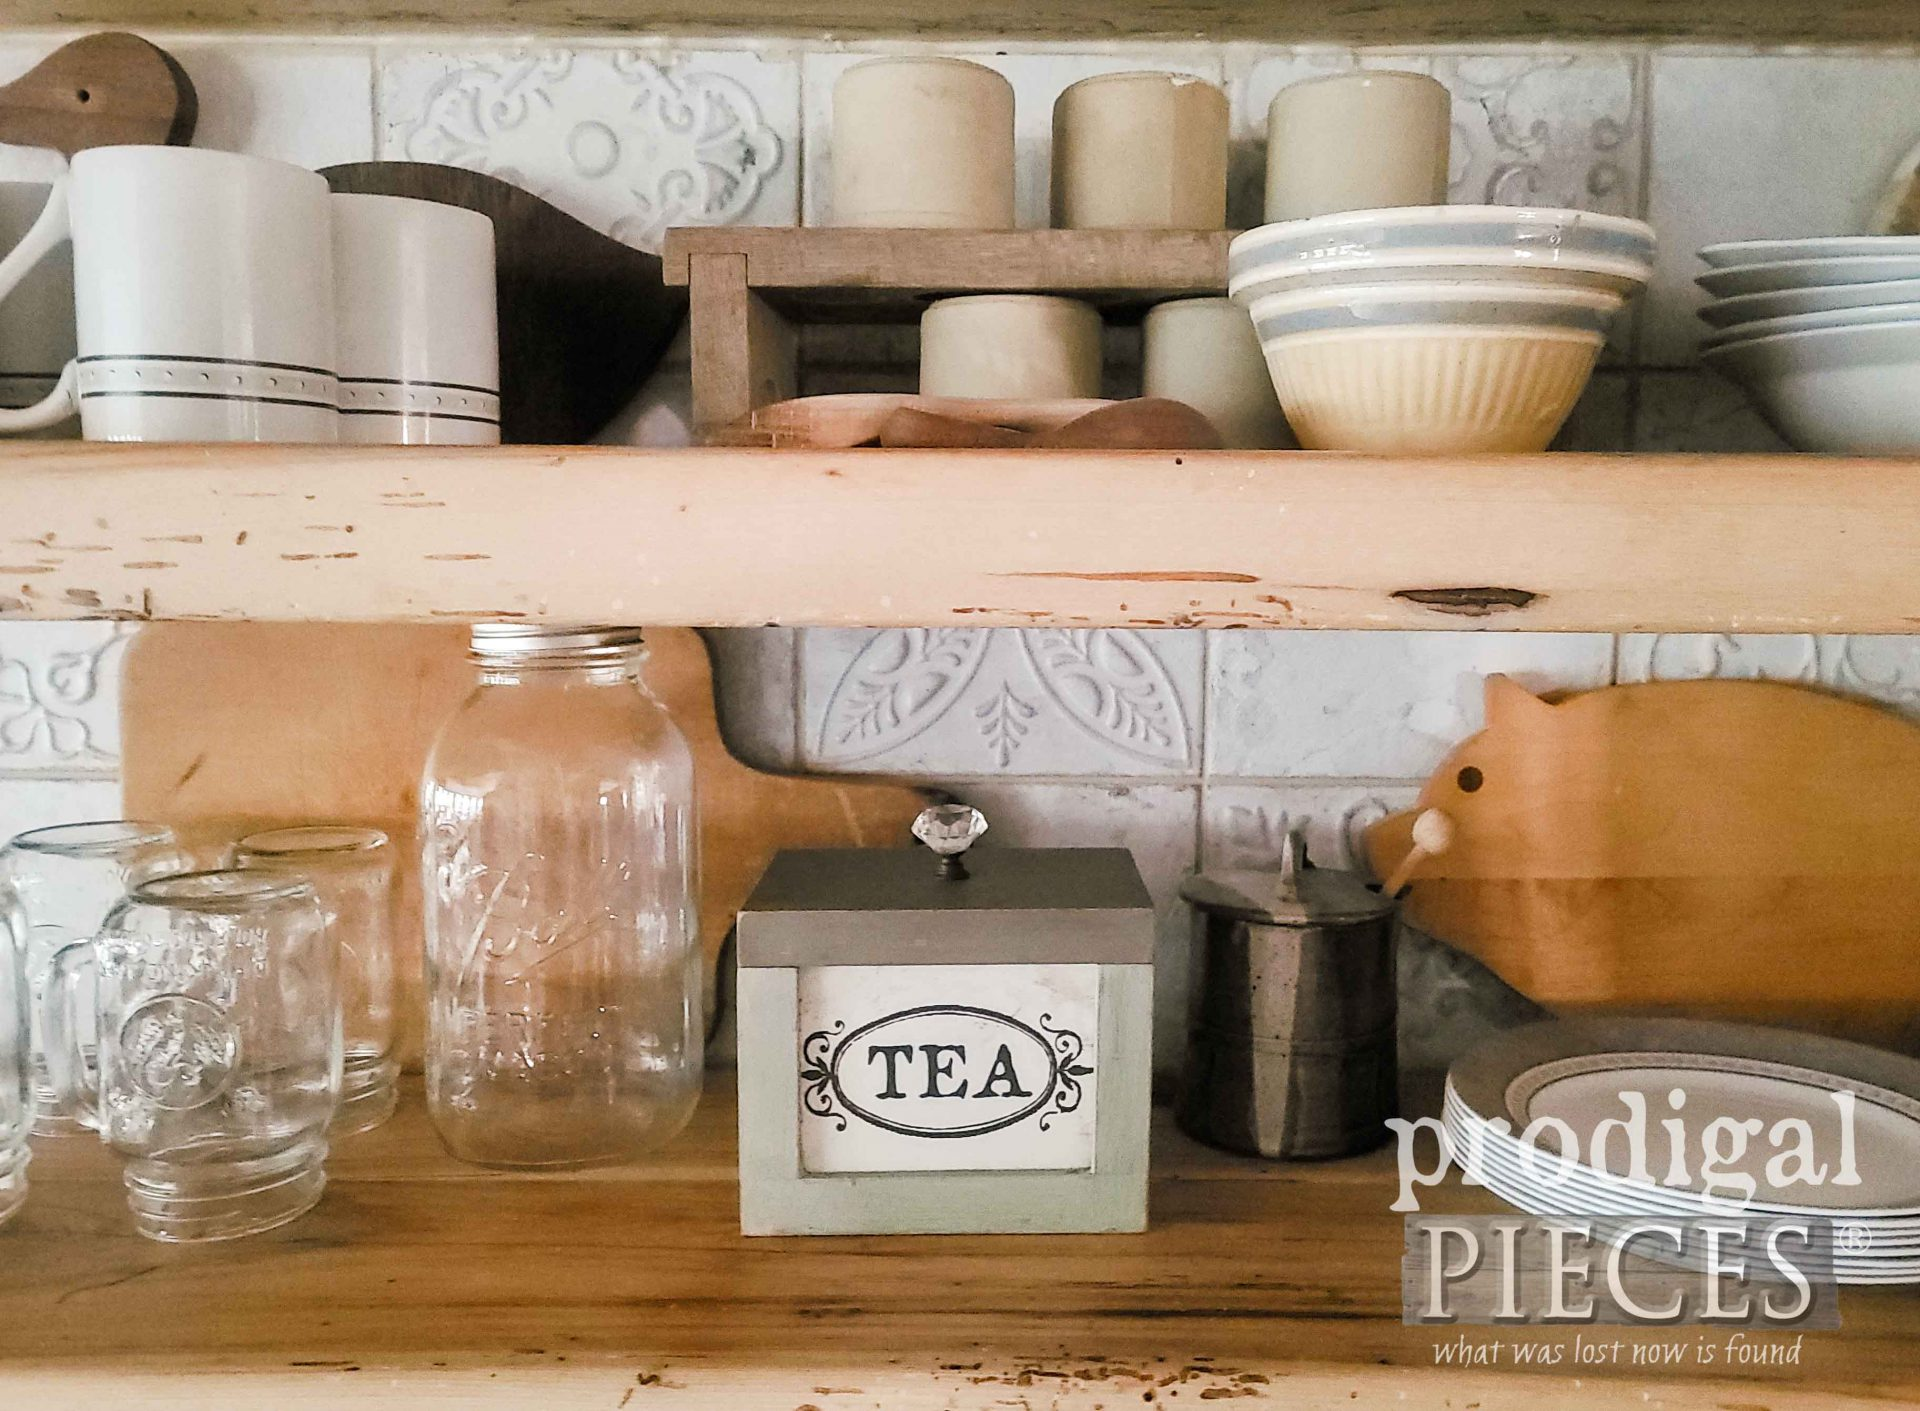 Vintage Tea Box for Farmhouse Mini Thrift Store Makeovers by Prodigal Pieces | prodigalpieces.com #prodigalpieces #farmhouse #kitchen #diy